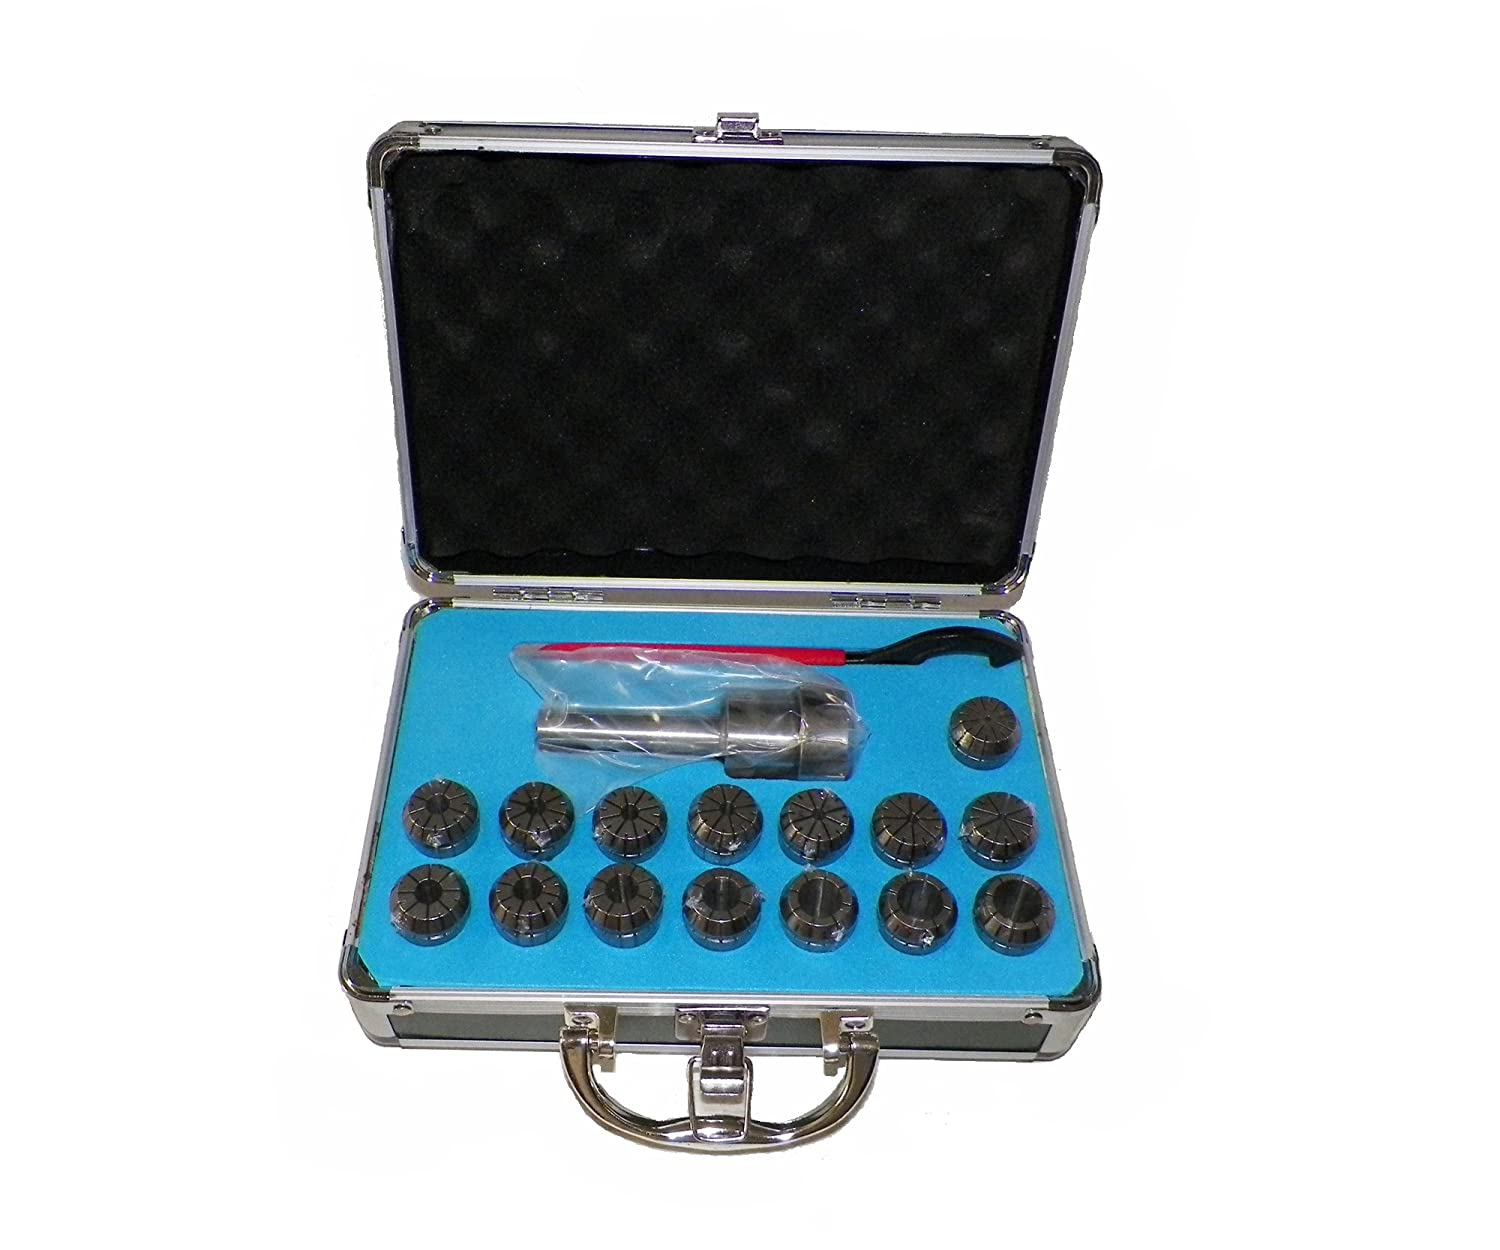 Mt2 Er25 Collet Chuck Tool Holder Set 15 Pcs Collets Morse 600 Sewing Machine Threading Diagram